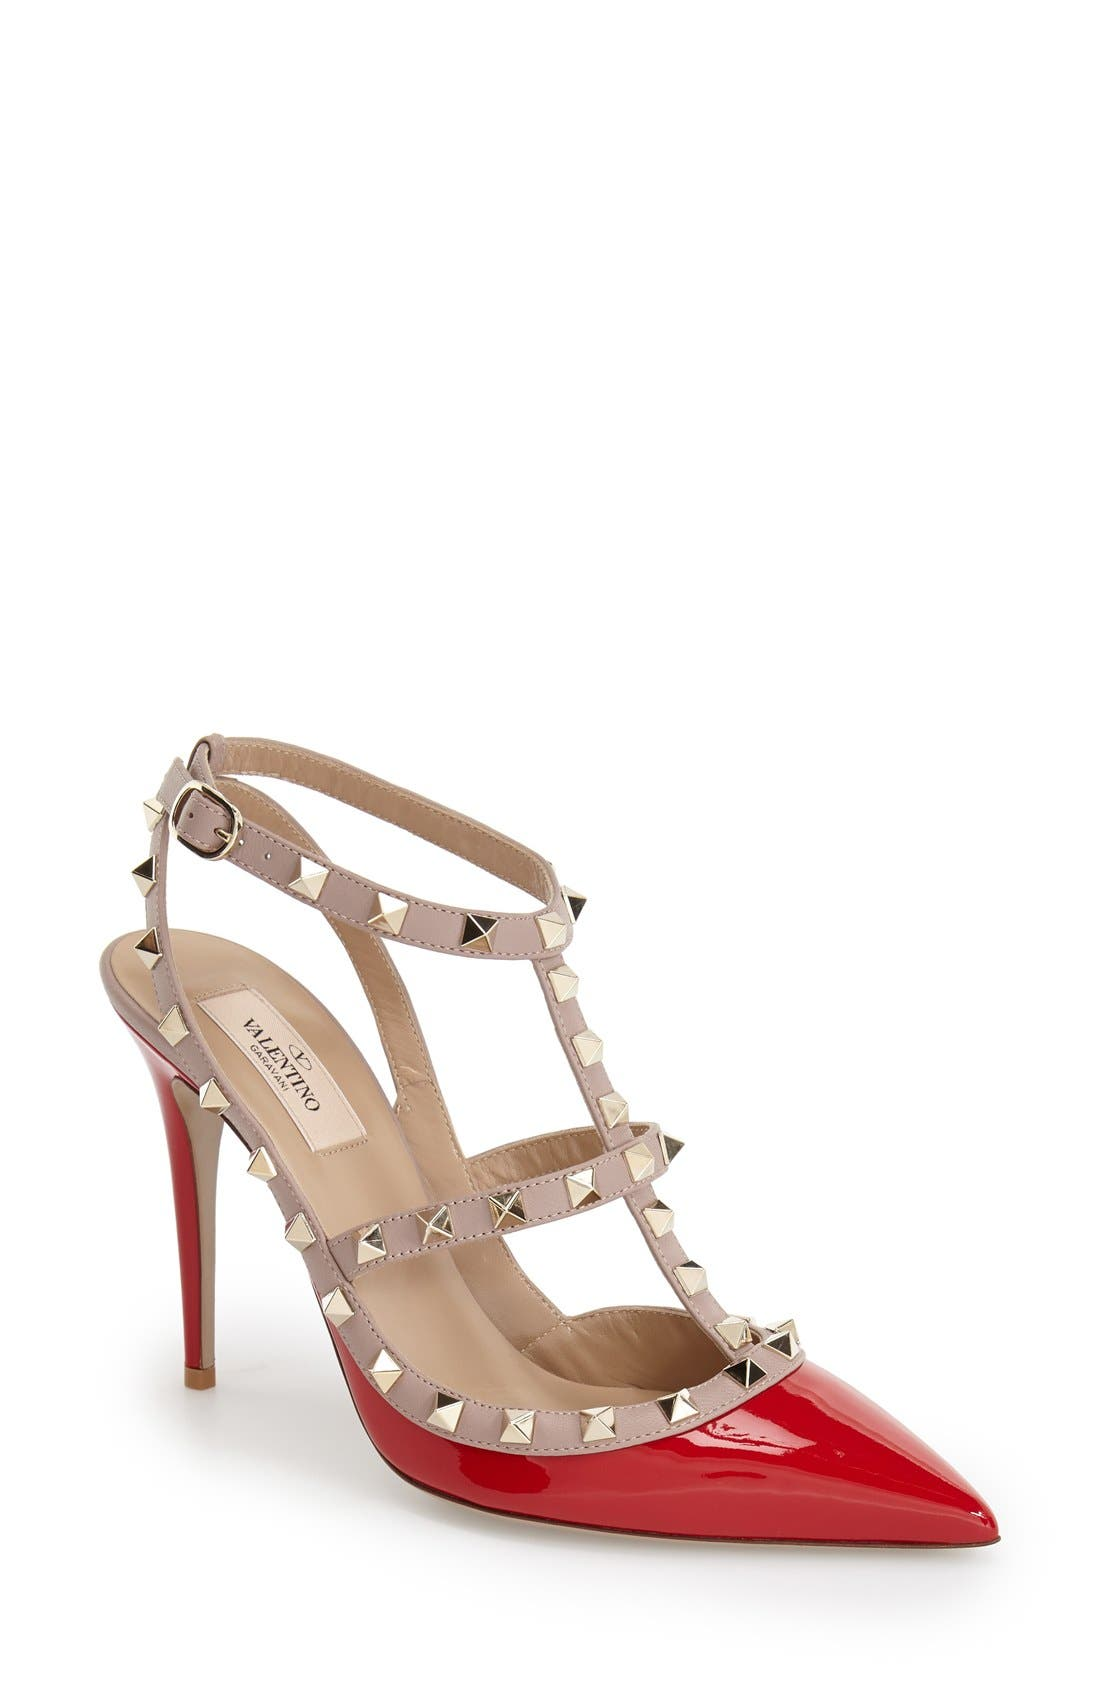 Alternate Image 1 Selected - VALENTINO GARAVANI Rockstud T-Strap Pump (Women)